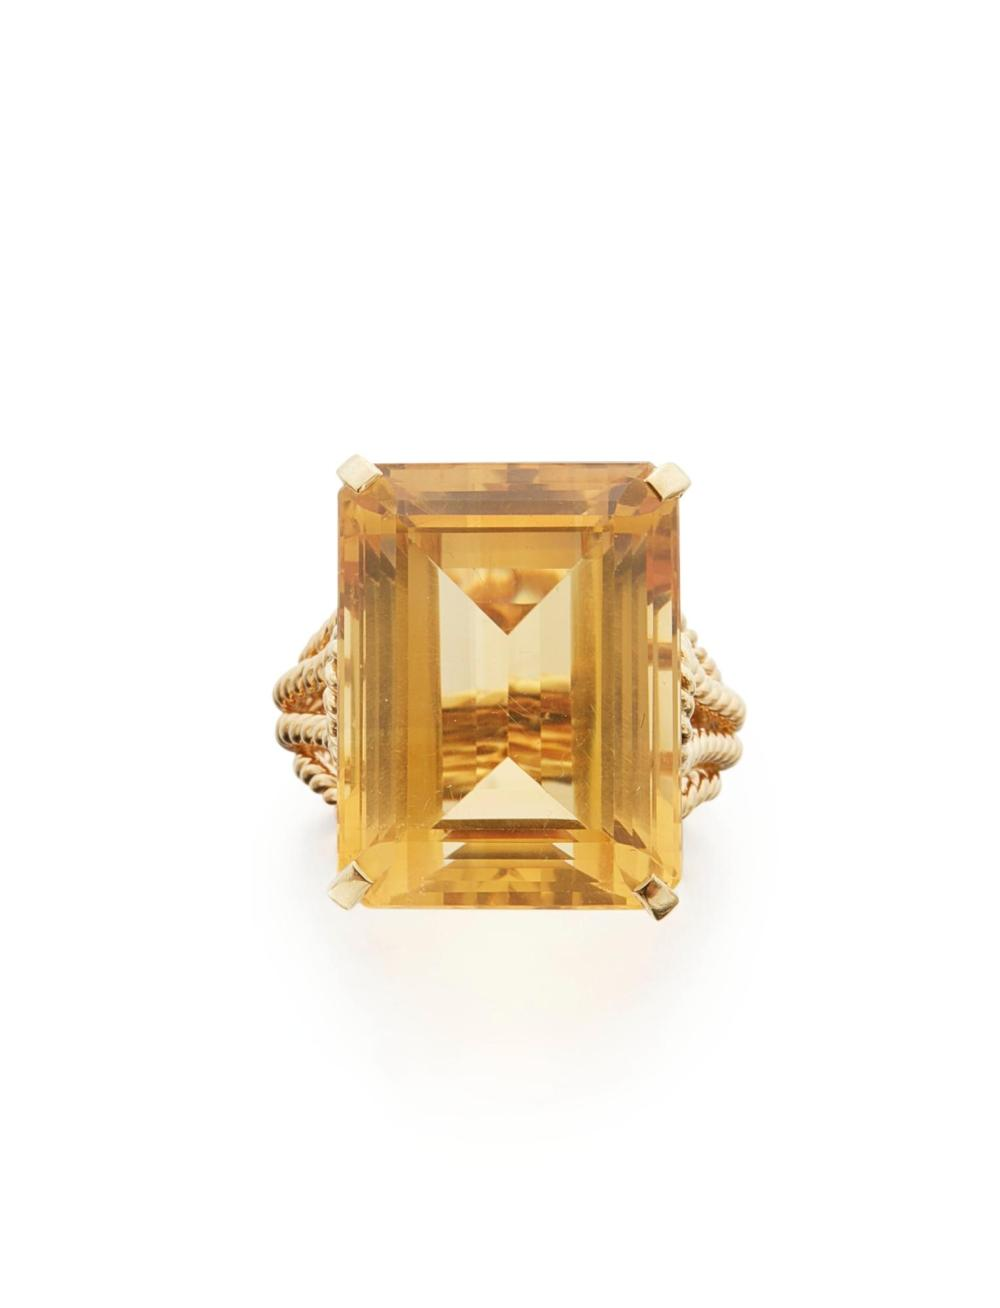 CITRINE RING, CARTIER